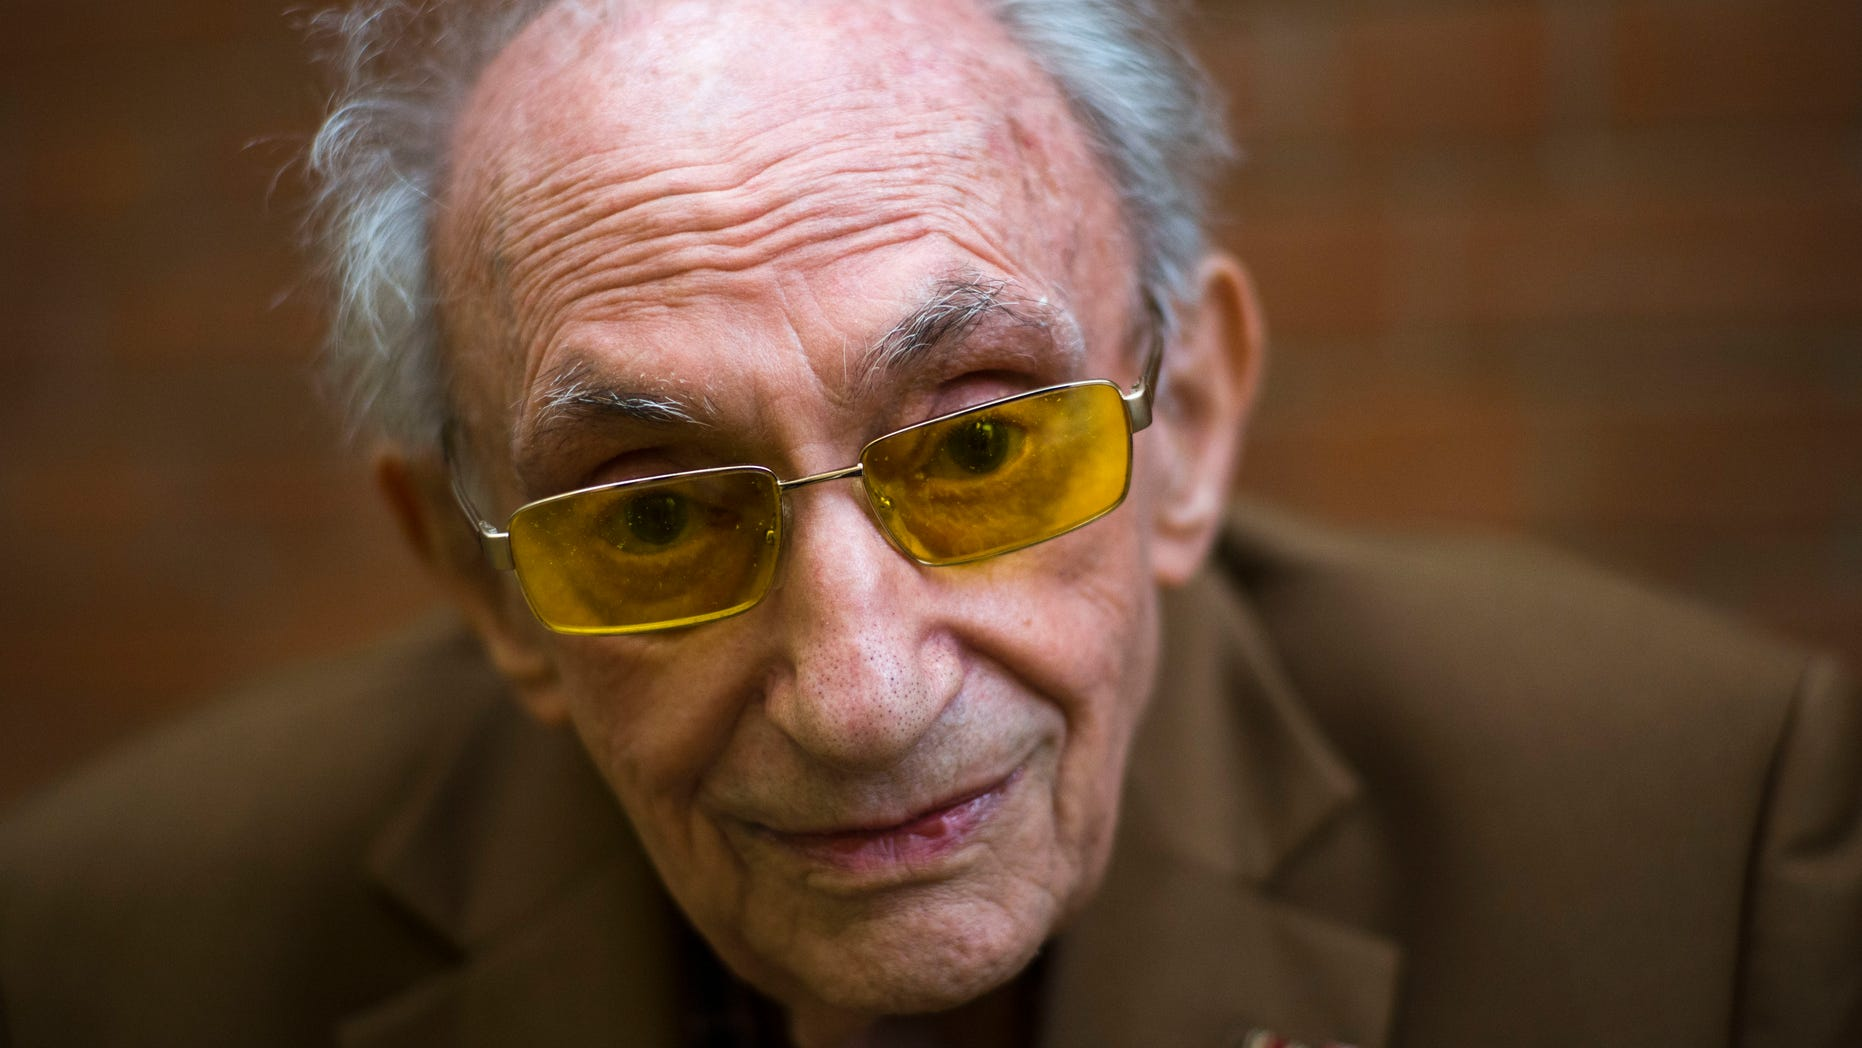 Walter Frankenstein born in 1924, a witness of the Nov. 9, 1938 terror against Jews in Berlin and one of the few survivors of Auerbach'sches Waisenhaus orphanage. (AP Photo/Markus Schreiber)